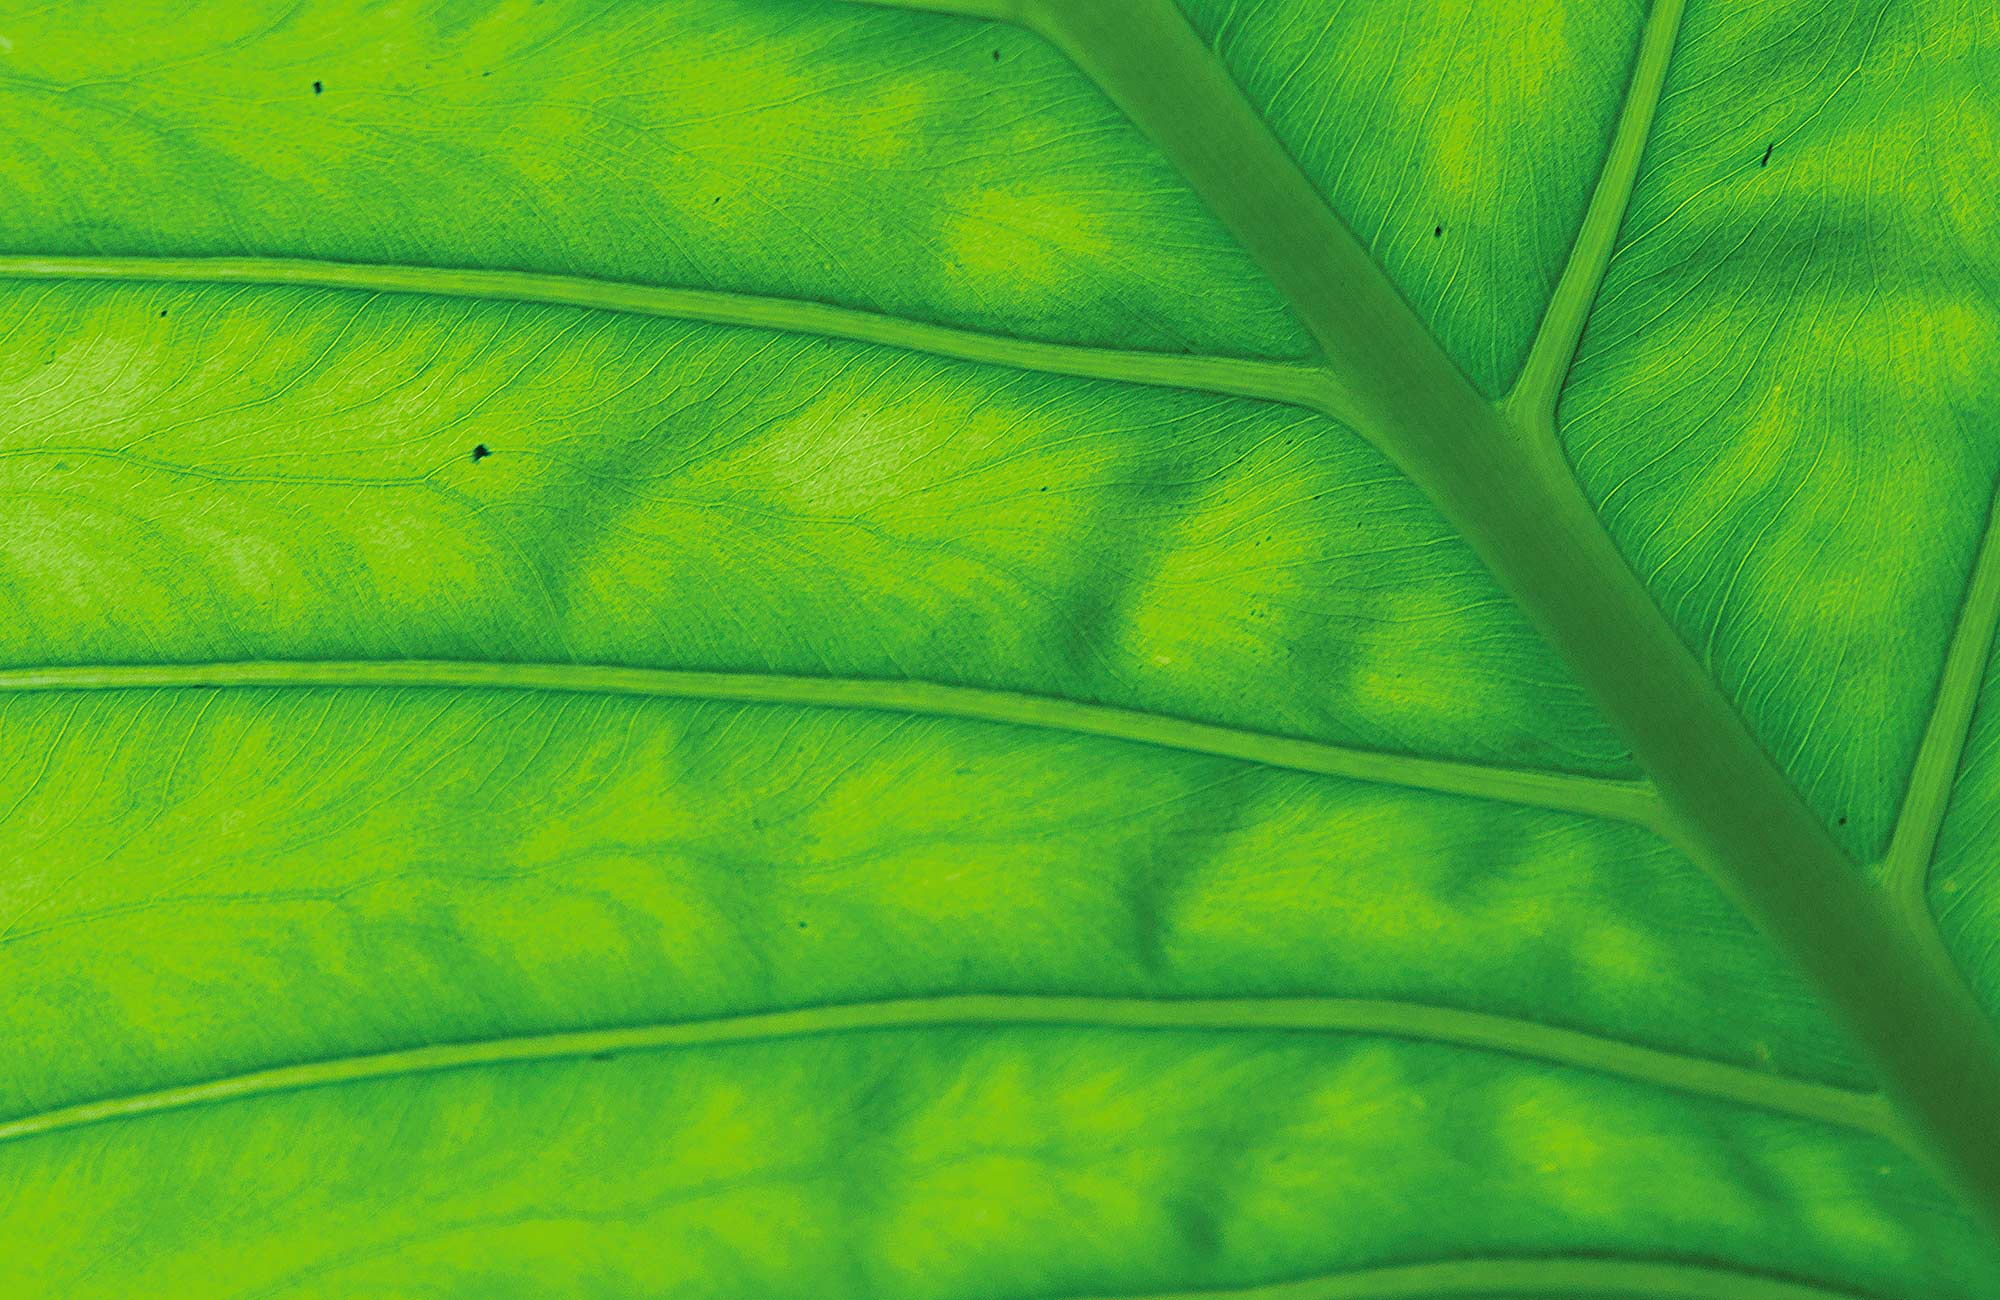 Green leaf. Photo:Rob Cleary